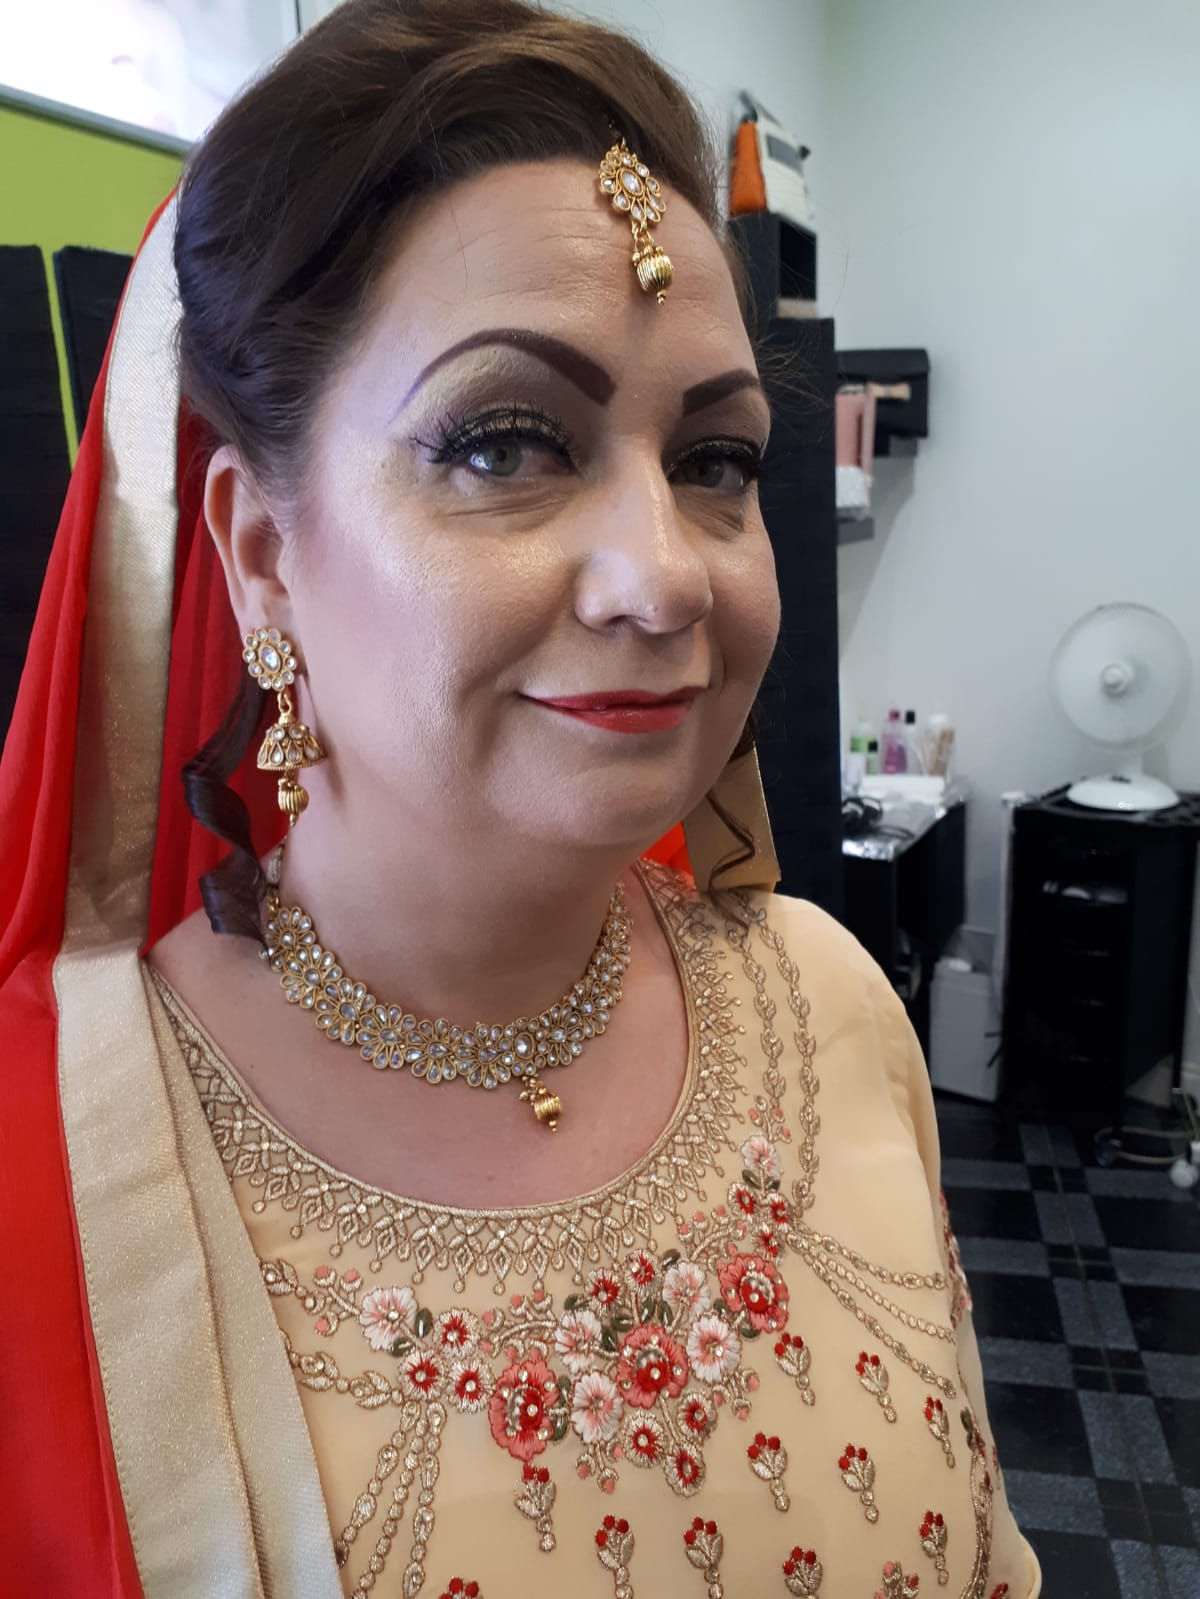 Araisha Hair & Beauty Salon Luton